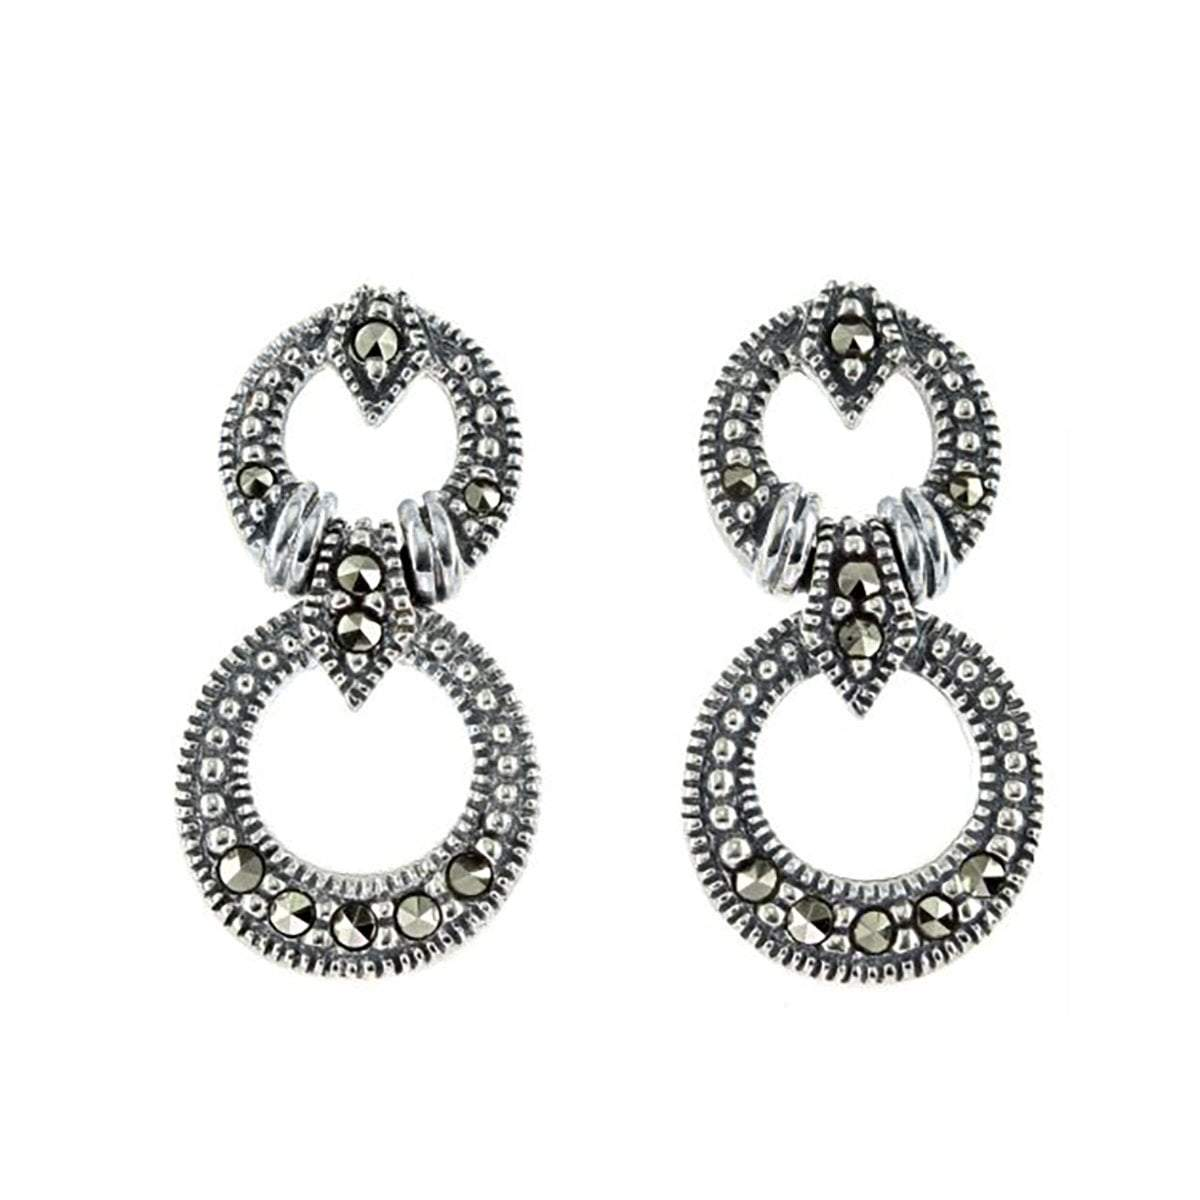 Marcasite Collection Earrings Default Title / Silver / Black Marcasite Double Circle Stud Earring